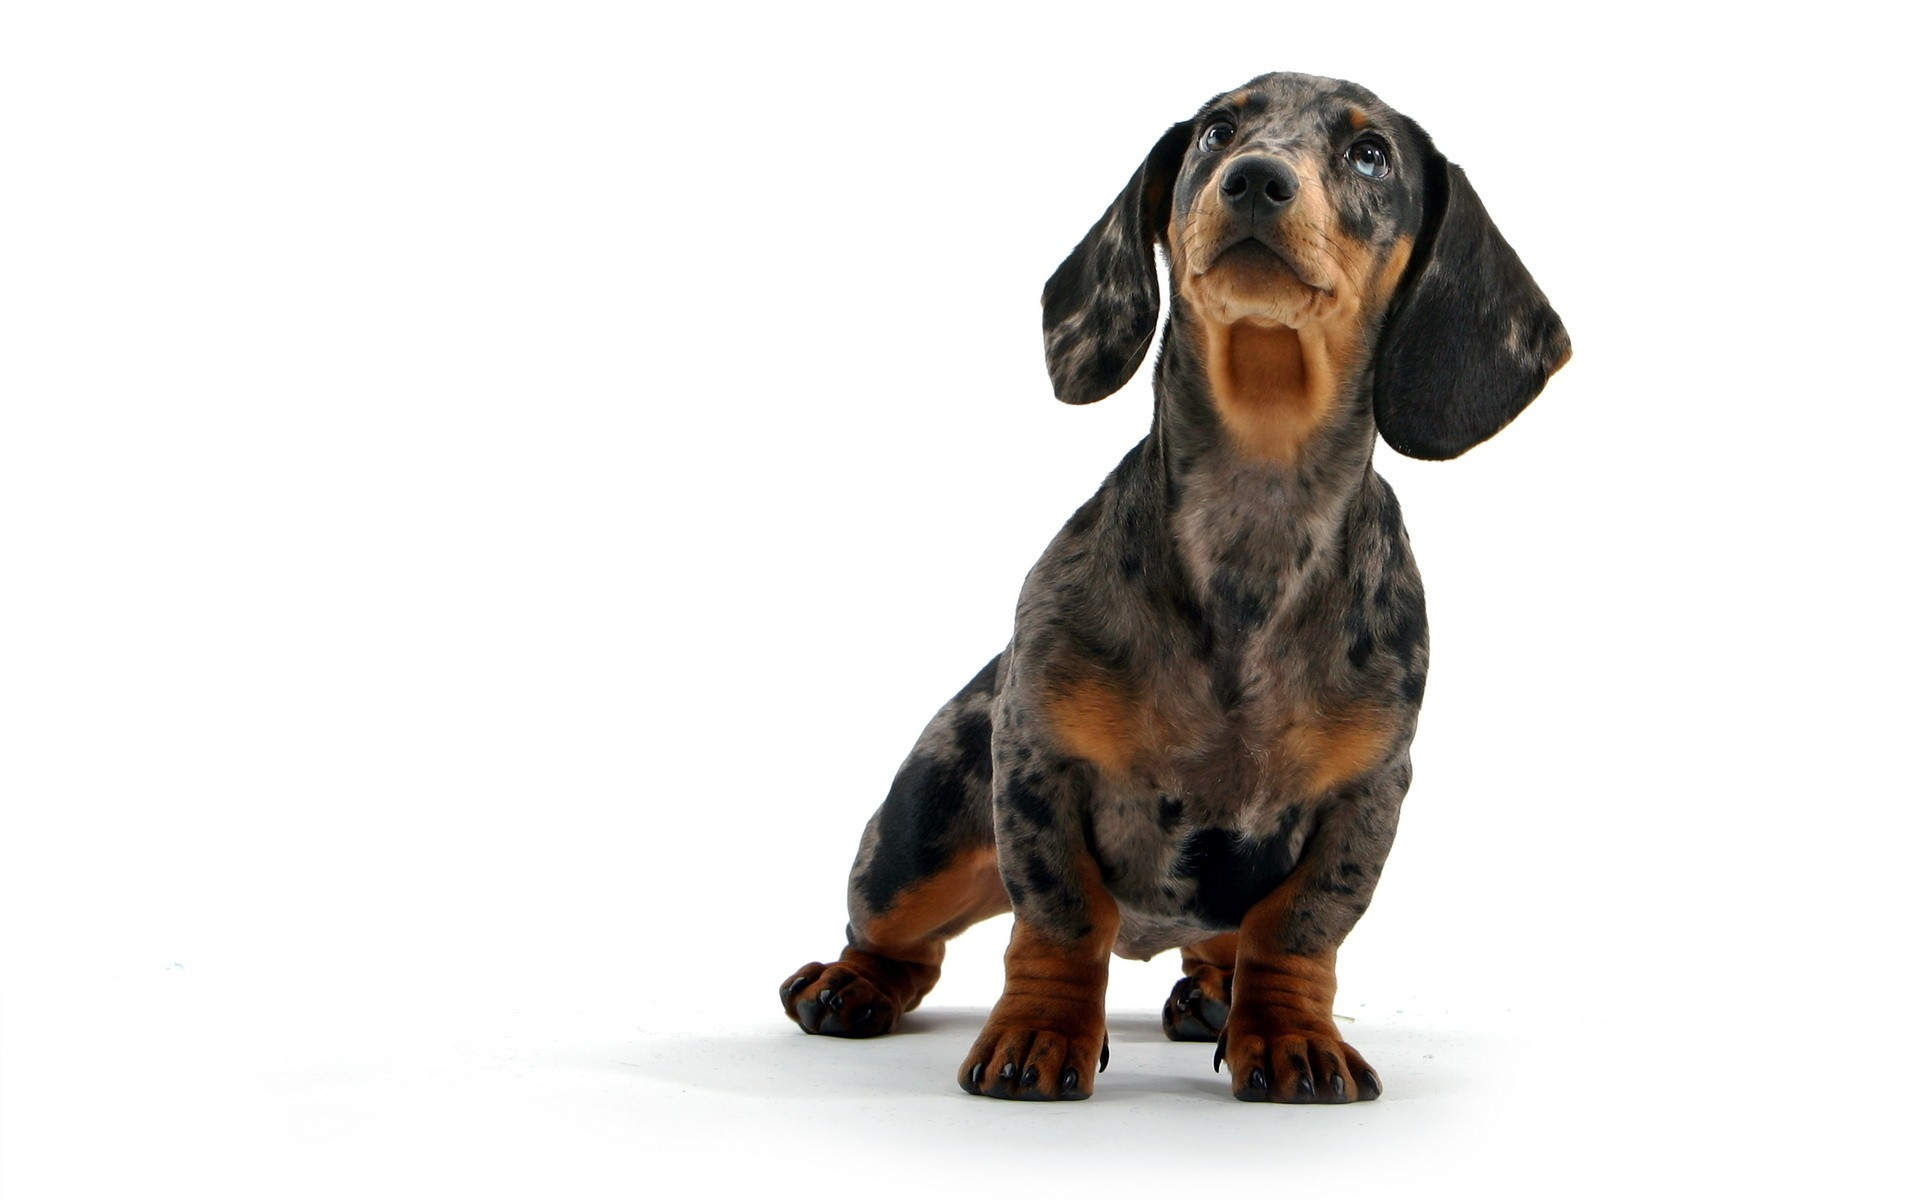 54 Dog Backgrounds Download Free Amazing Wallpapers Of Dogs For